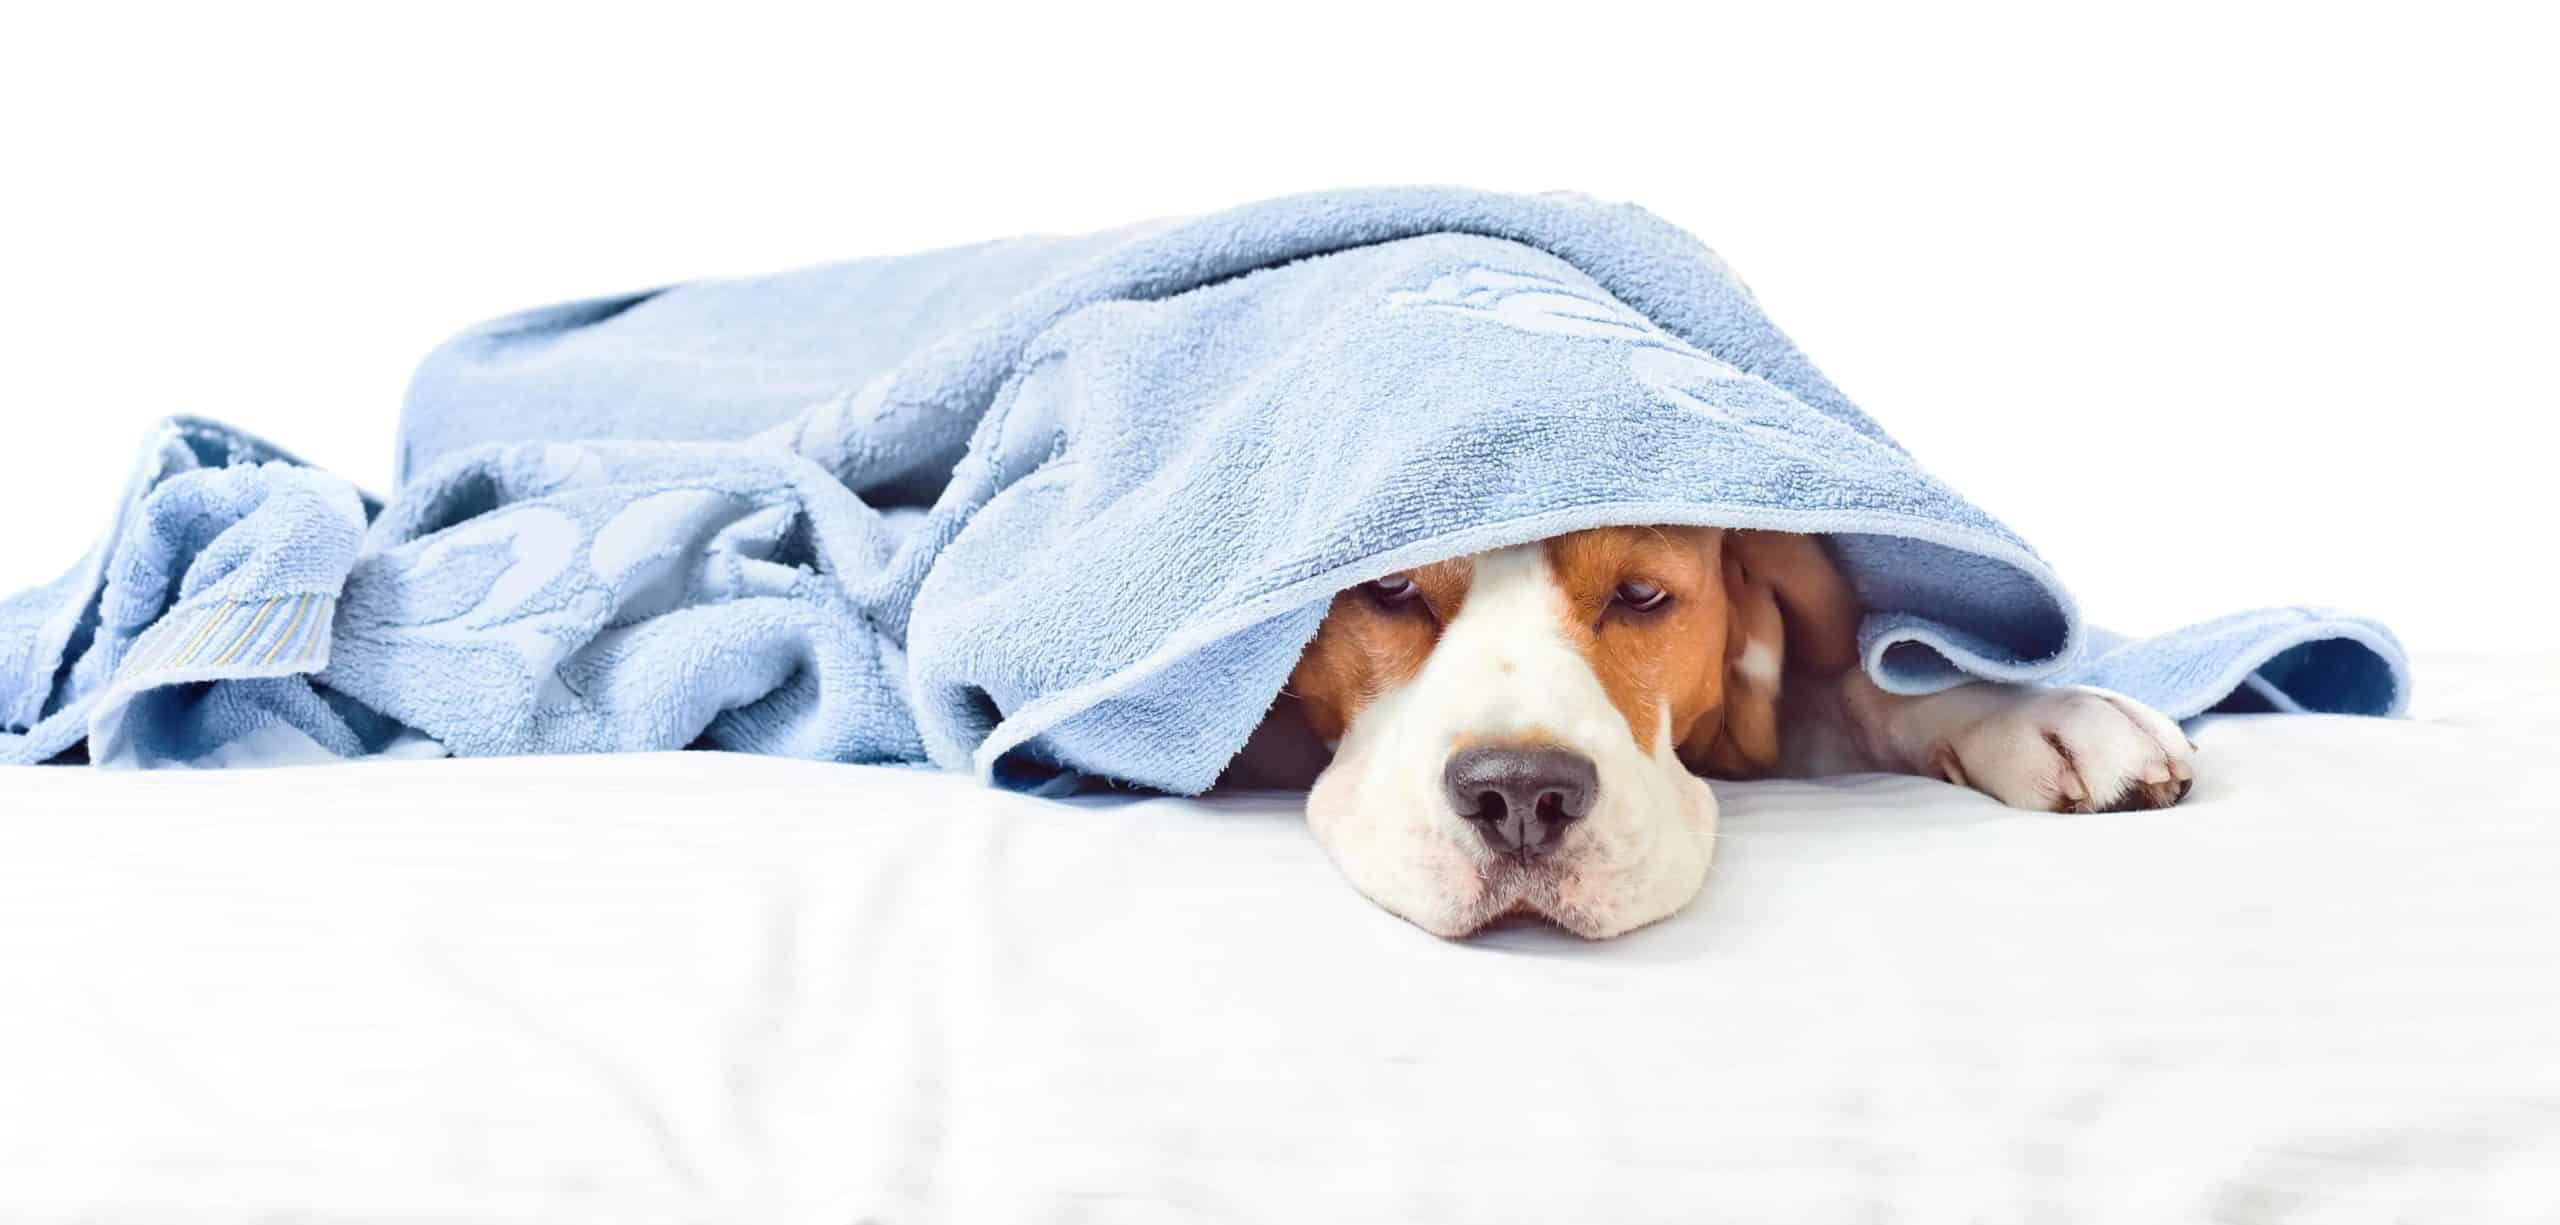 Sick dog lies under a towel. It's never too early or too late to watch for symptoms of anemia in dogs and get a diagnosis.